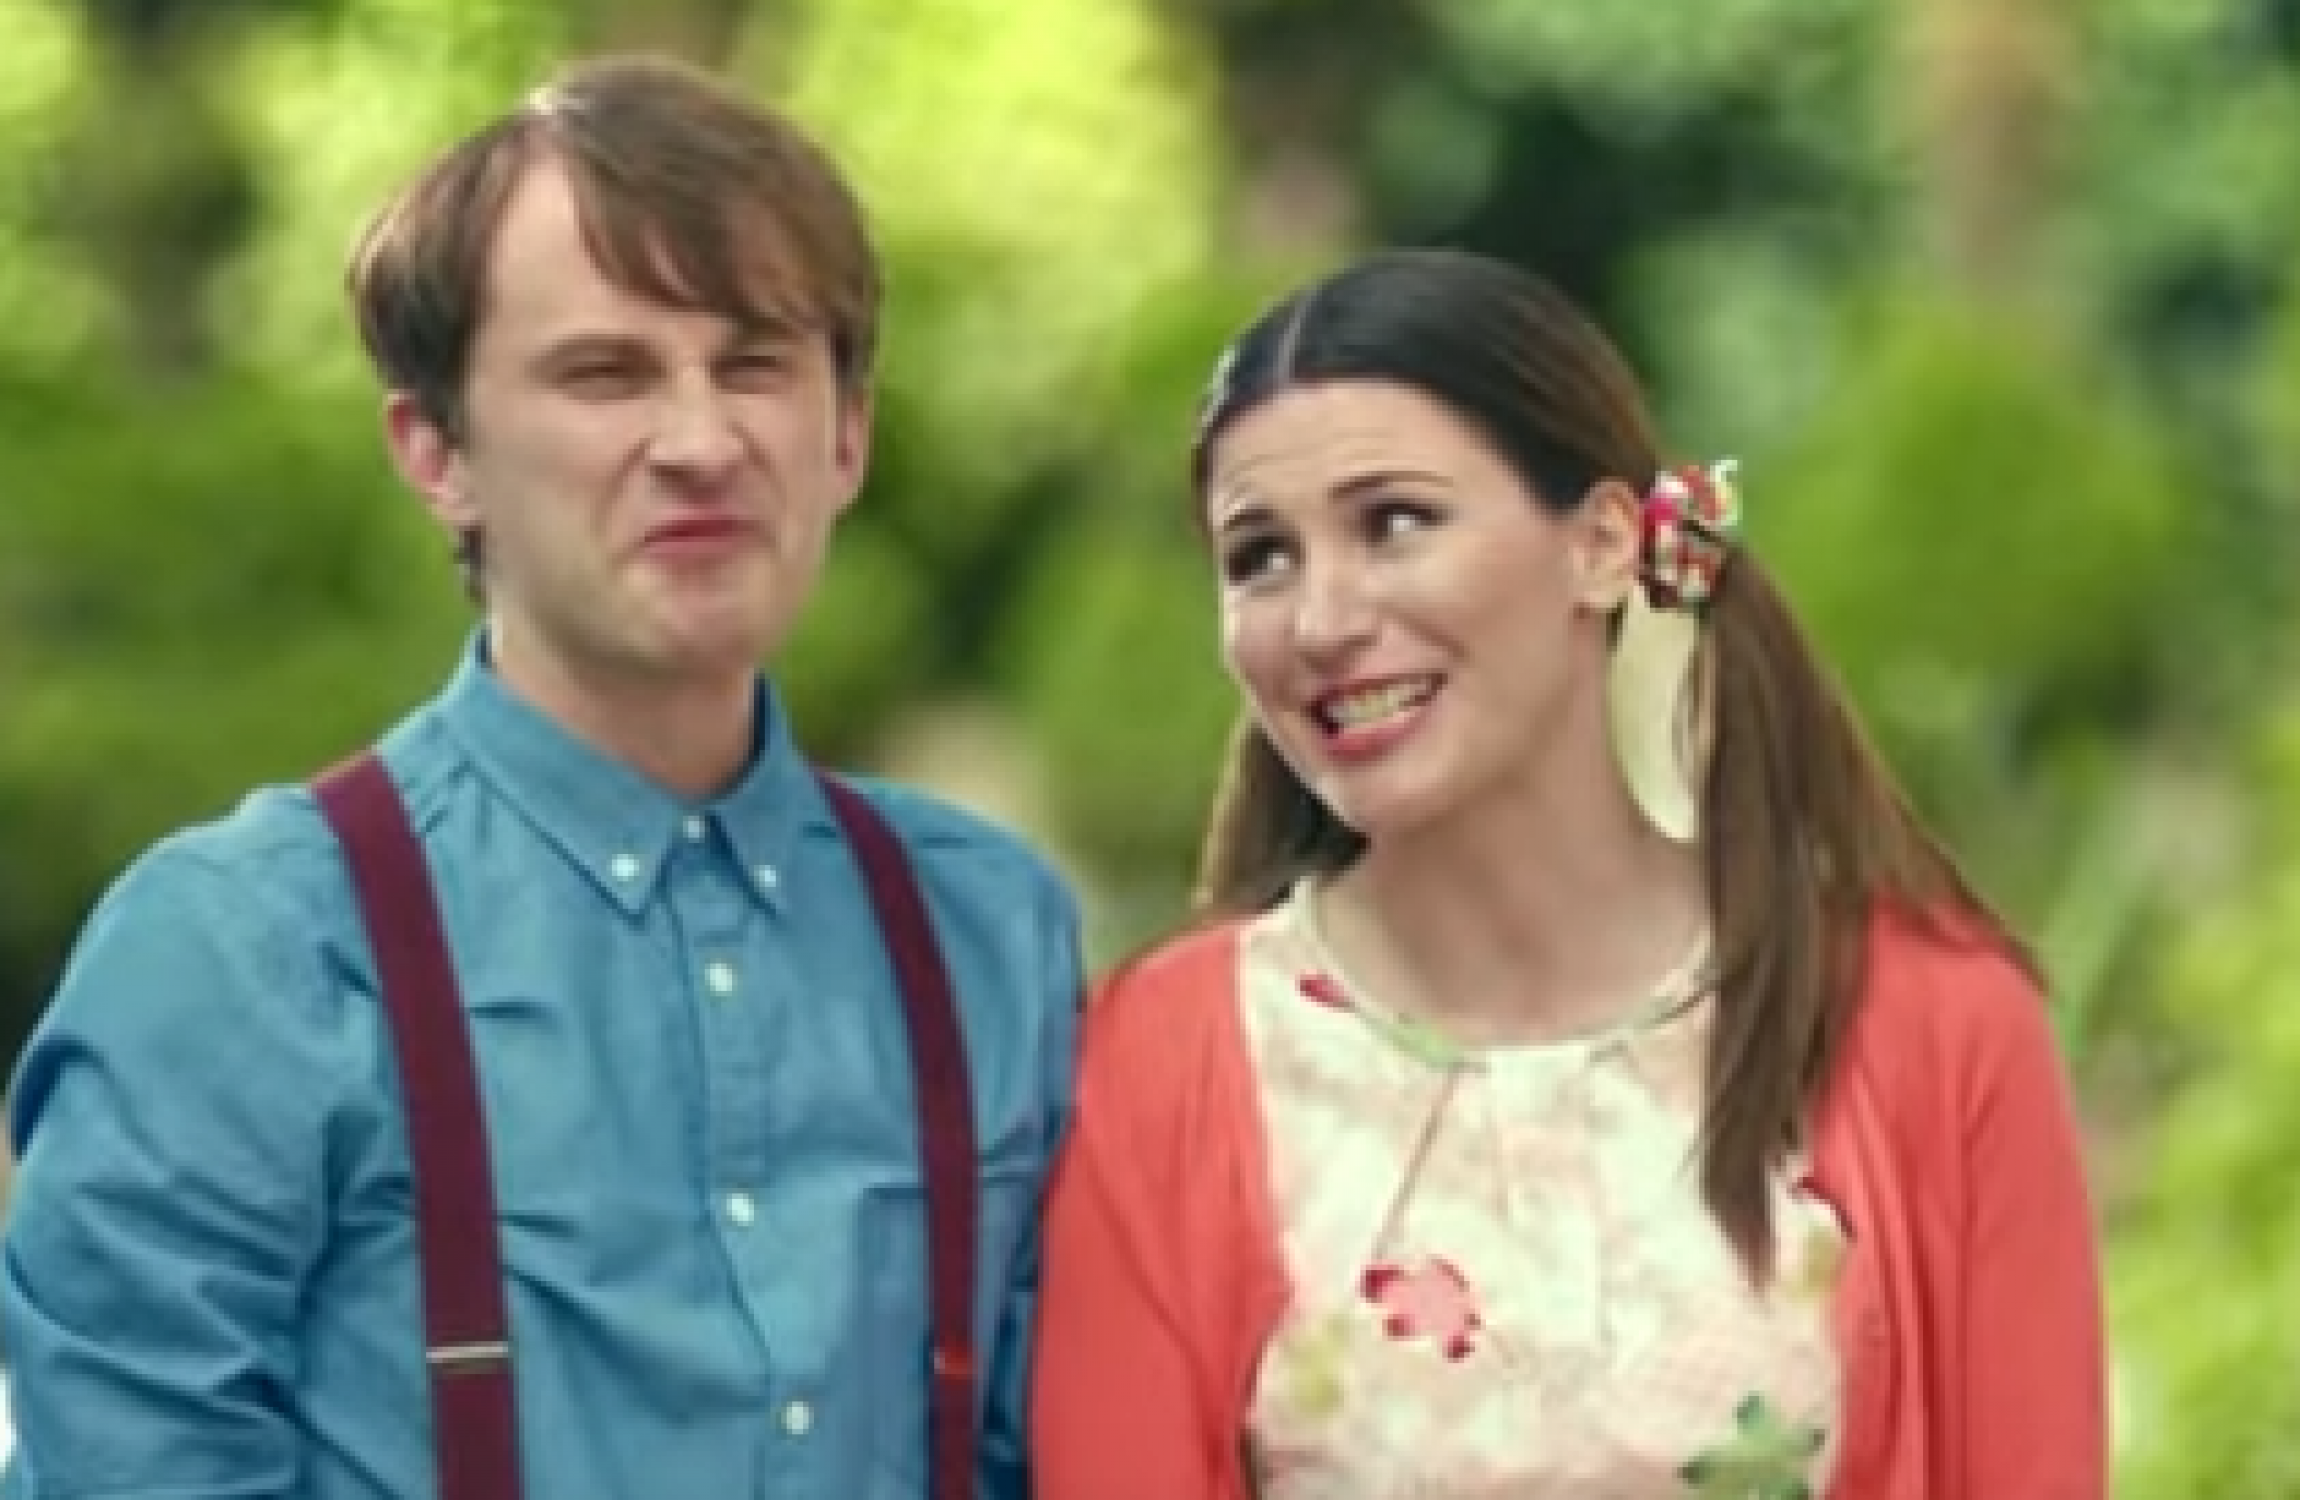 Hot Neighbour In Defence Of Rachel And Steve From The Bank Of Ireland Ads